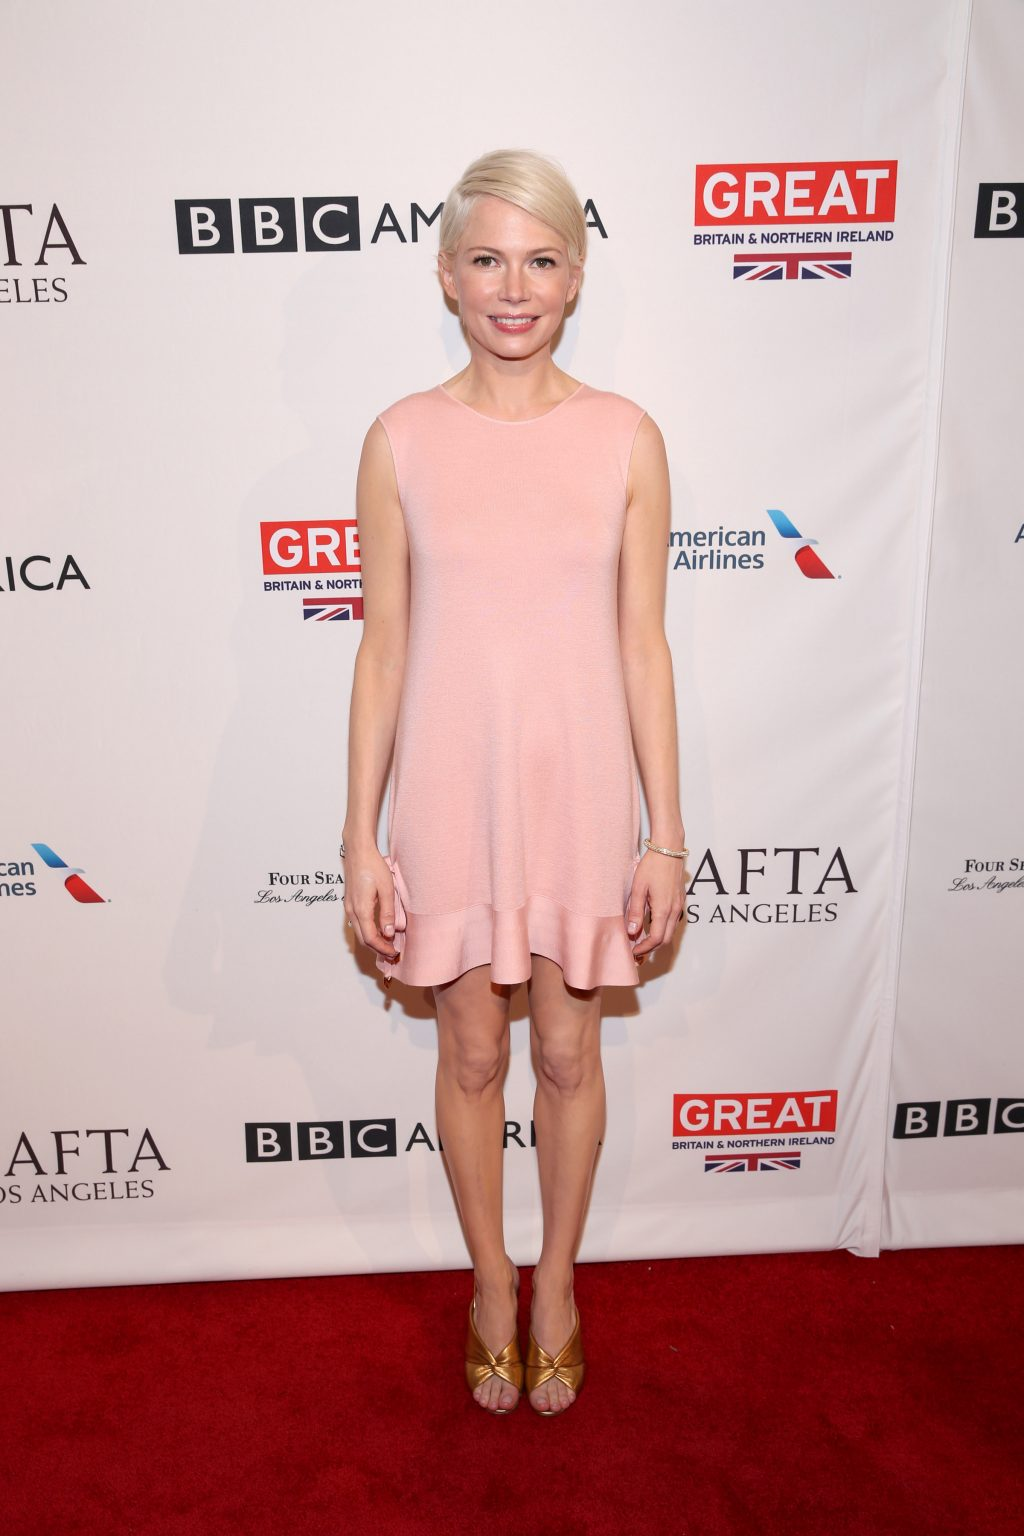 LOS ANGELES, CA - JANUARY 07: Actress Michelle Williams attends The BAFTA Tea Party at Four Seasons Hotel Los Angeles at Beverly Hills on January 7, 2017 in Los Angeles, California. (Photo by Phillip Faraone/Getty Images)